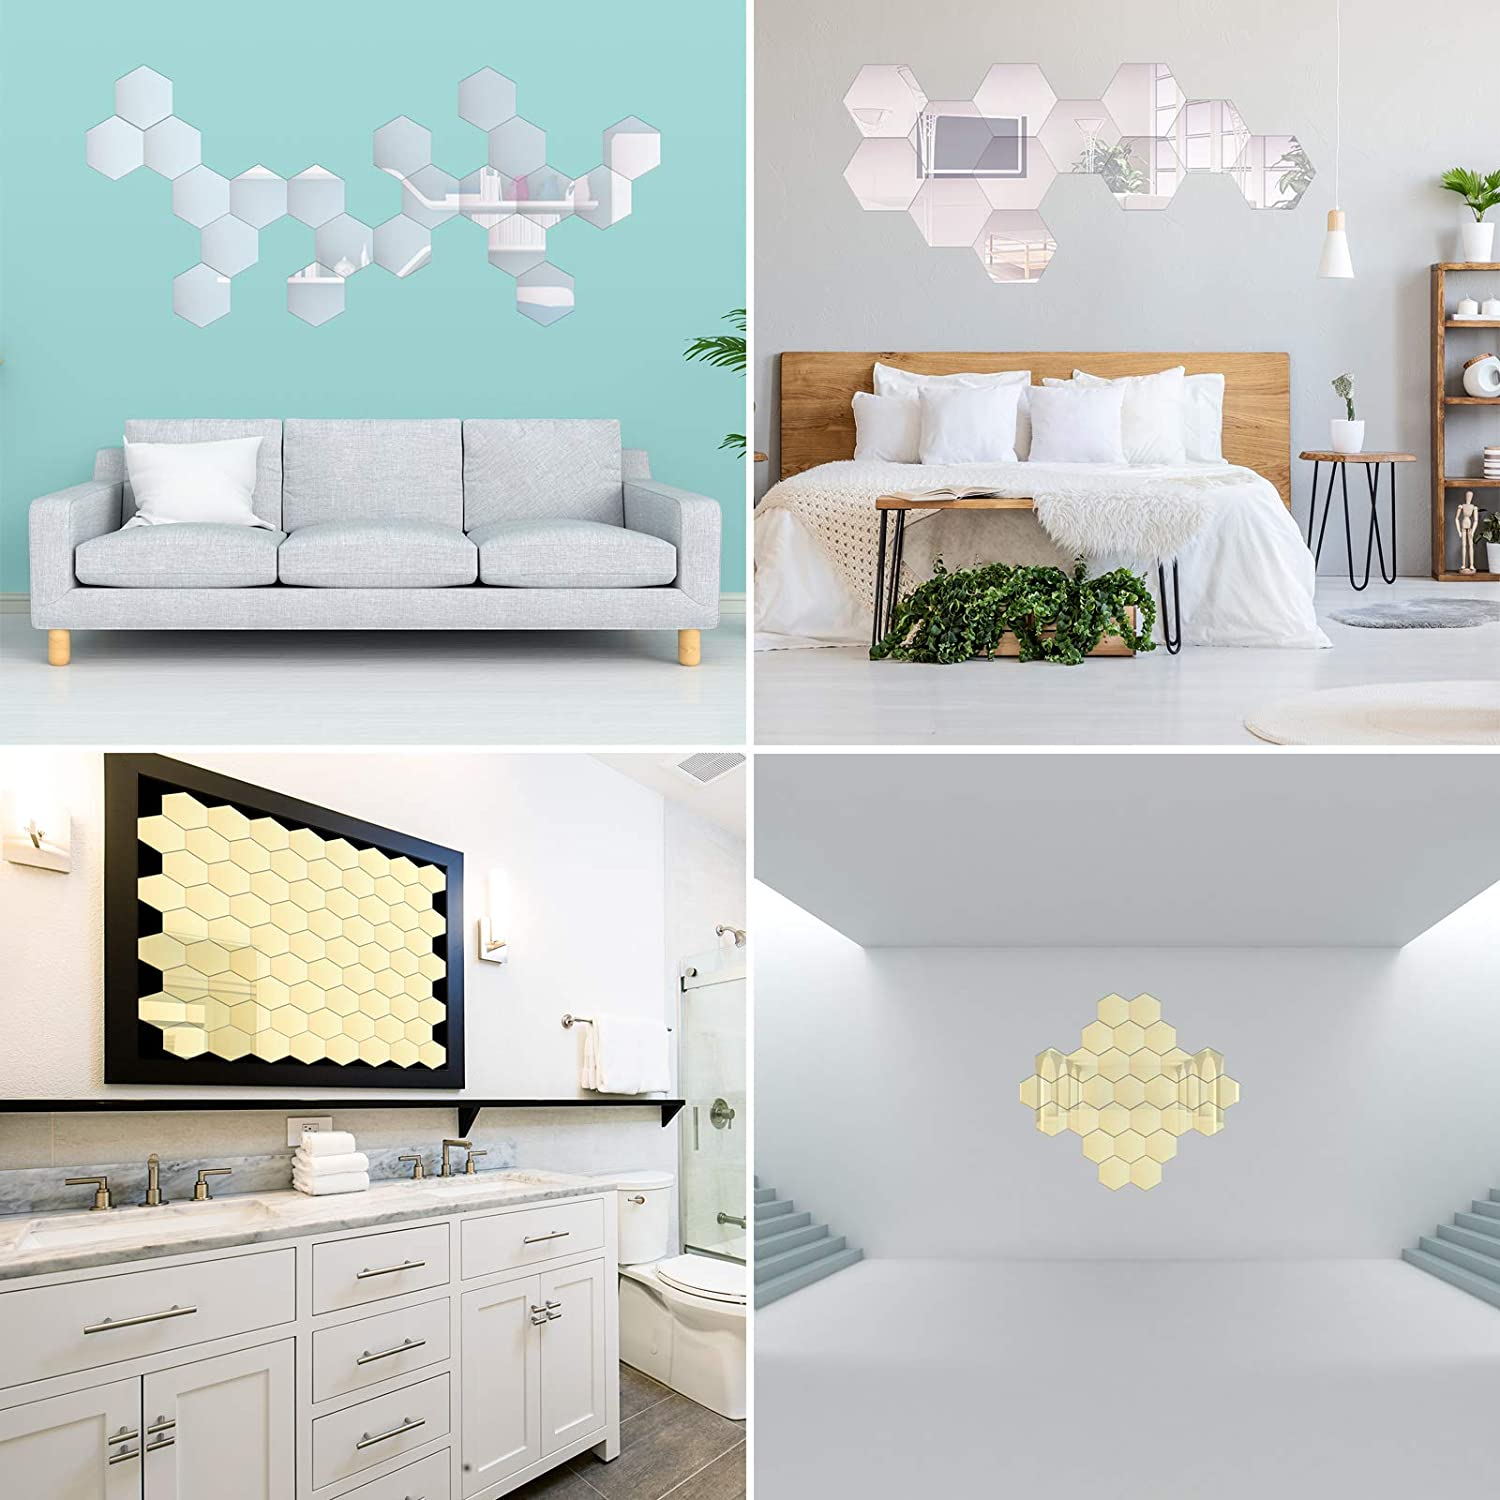 WADILE 12Pcs Removable Acrylic Mirror Setting Wall Sticker Decal for Home Living Room Bedroom Decor